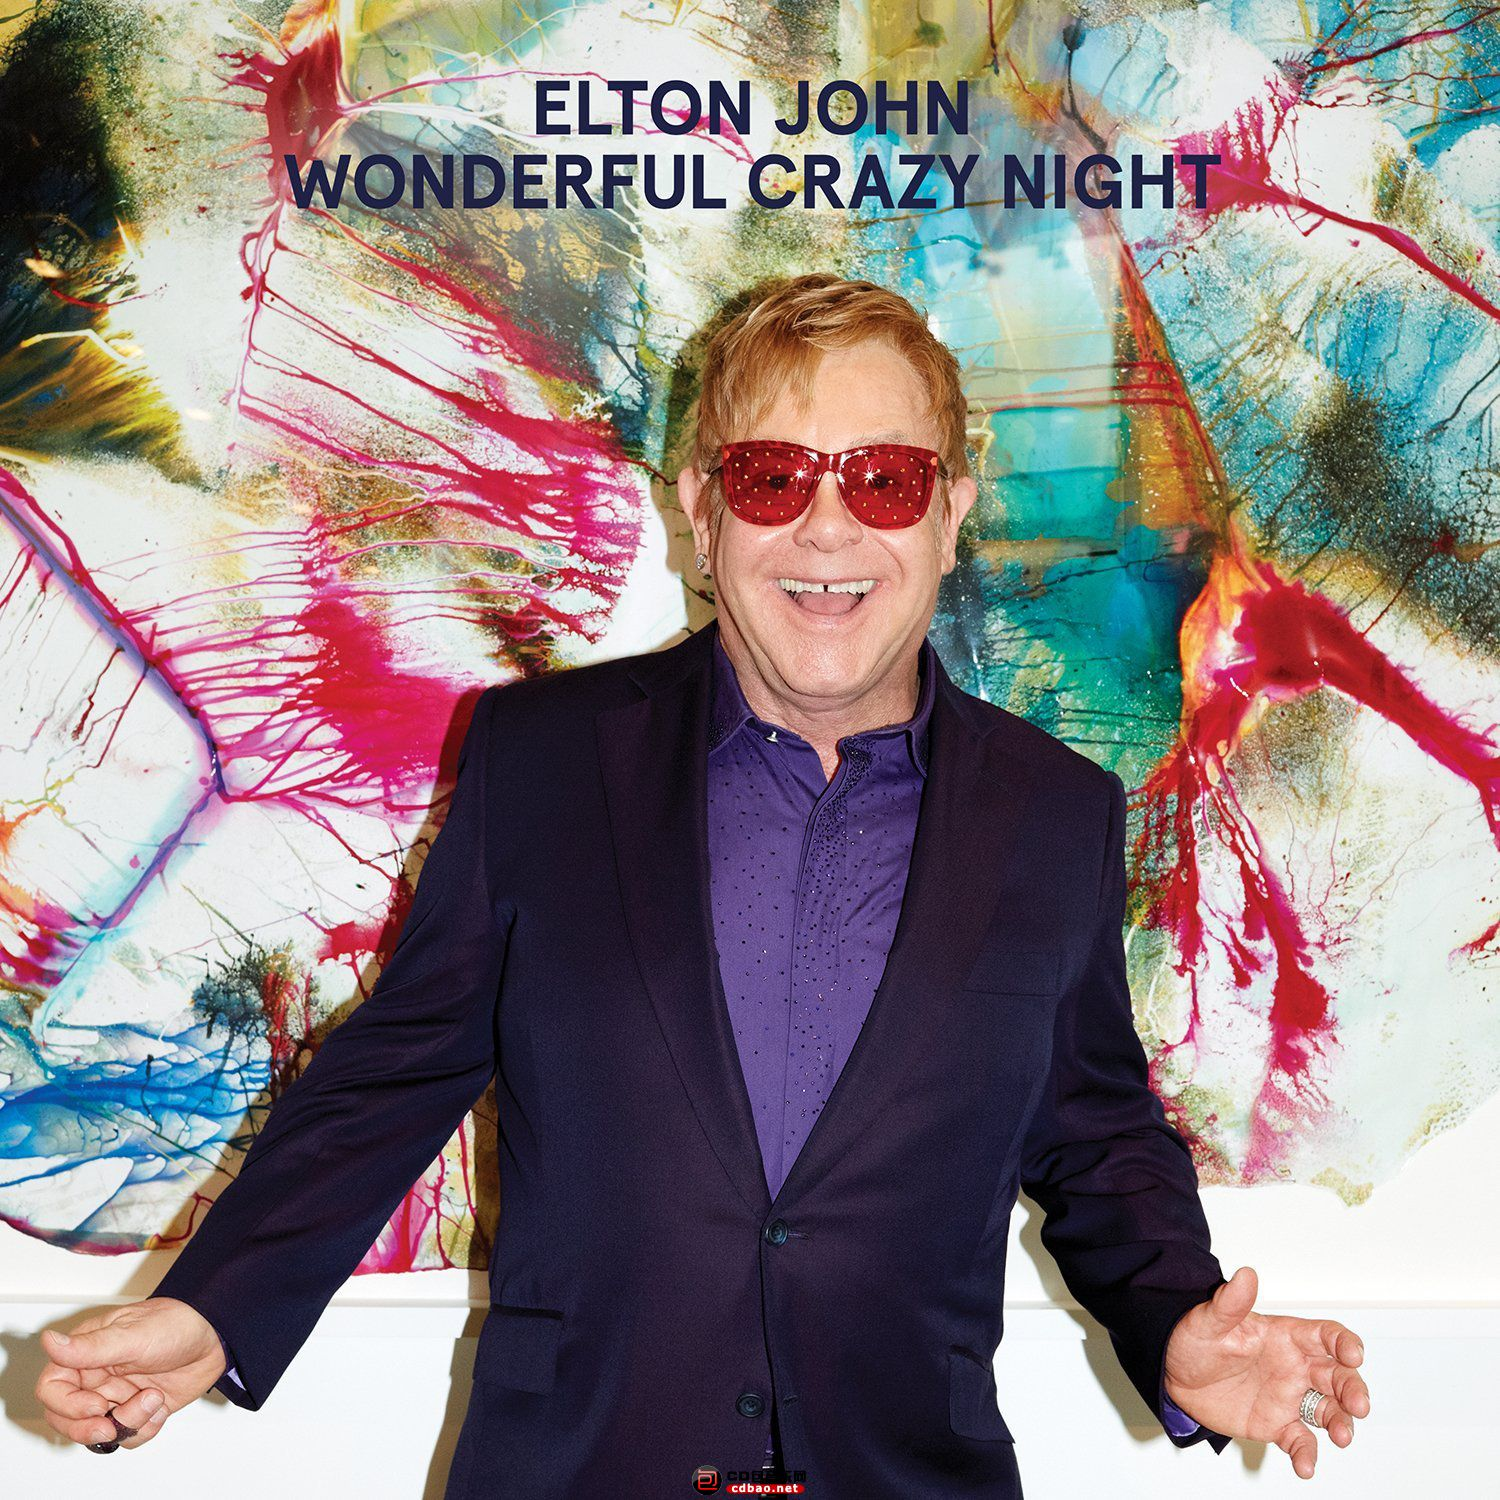 Elton-John-Wonderful-Crazy-Night-2015.jpg